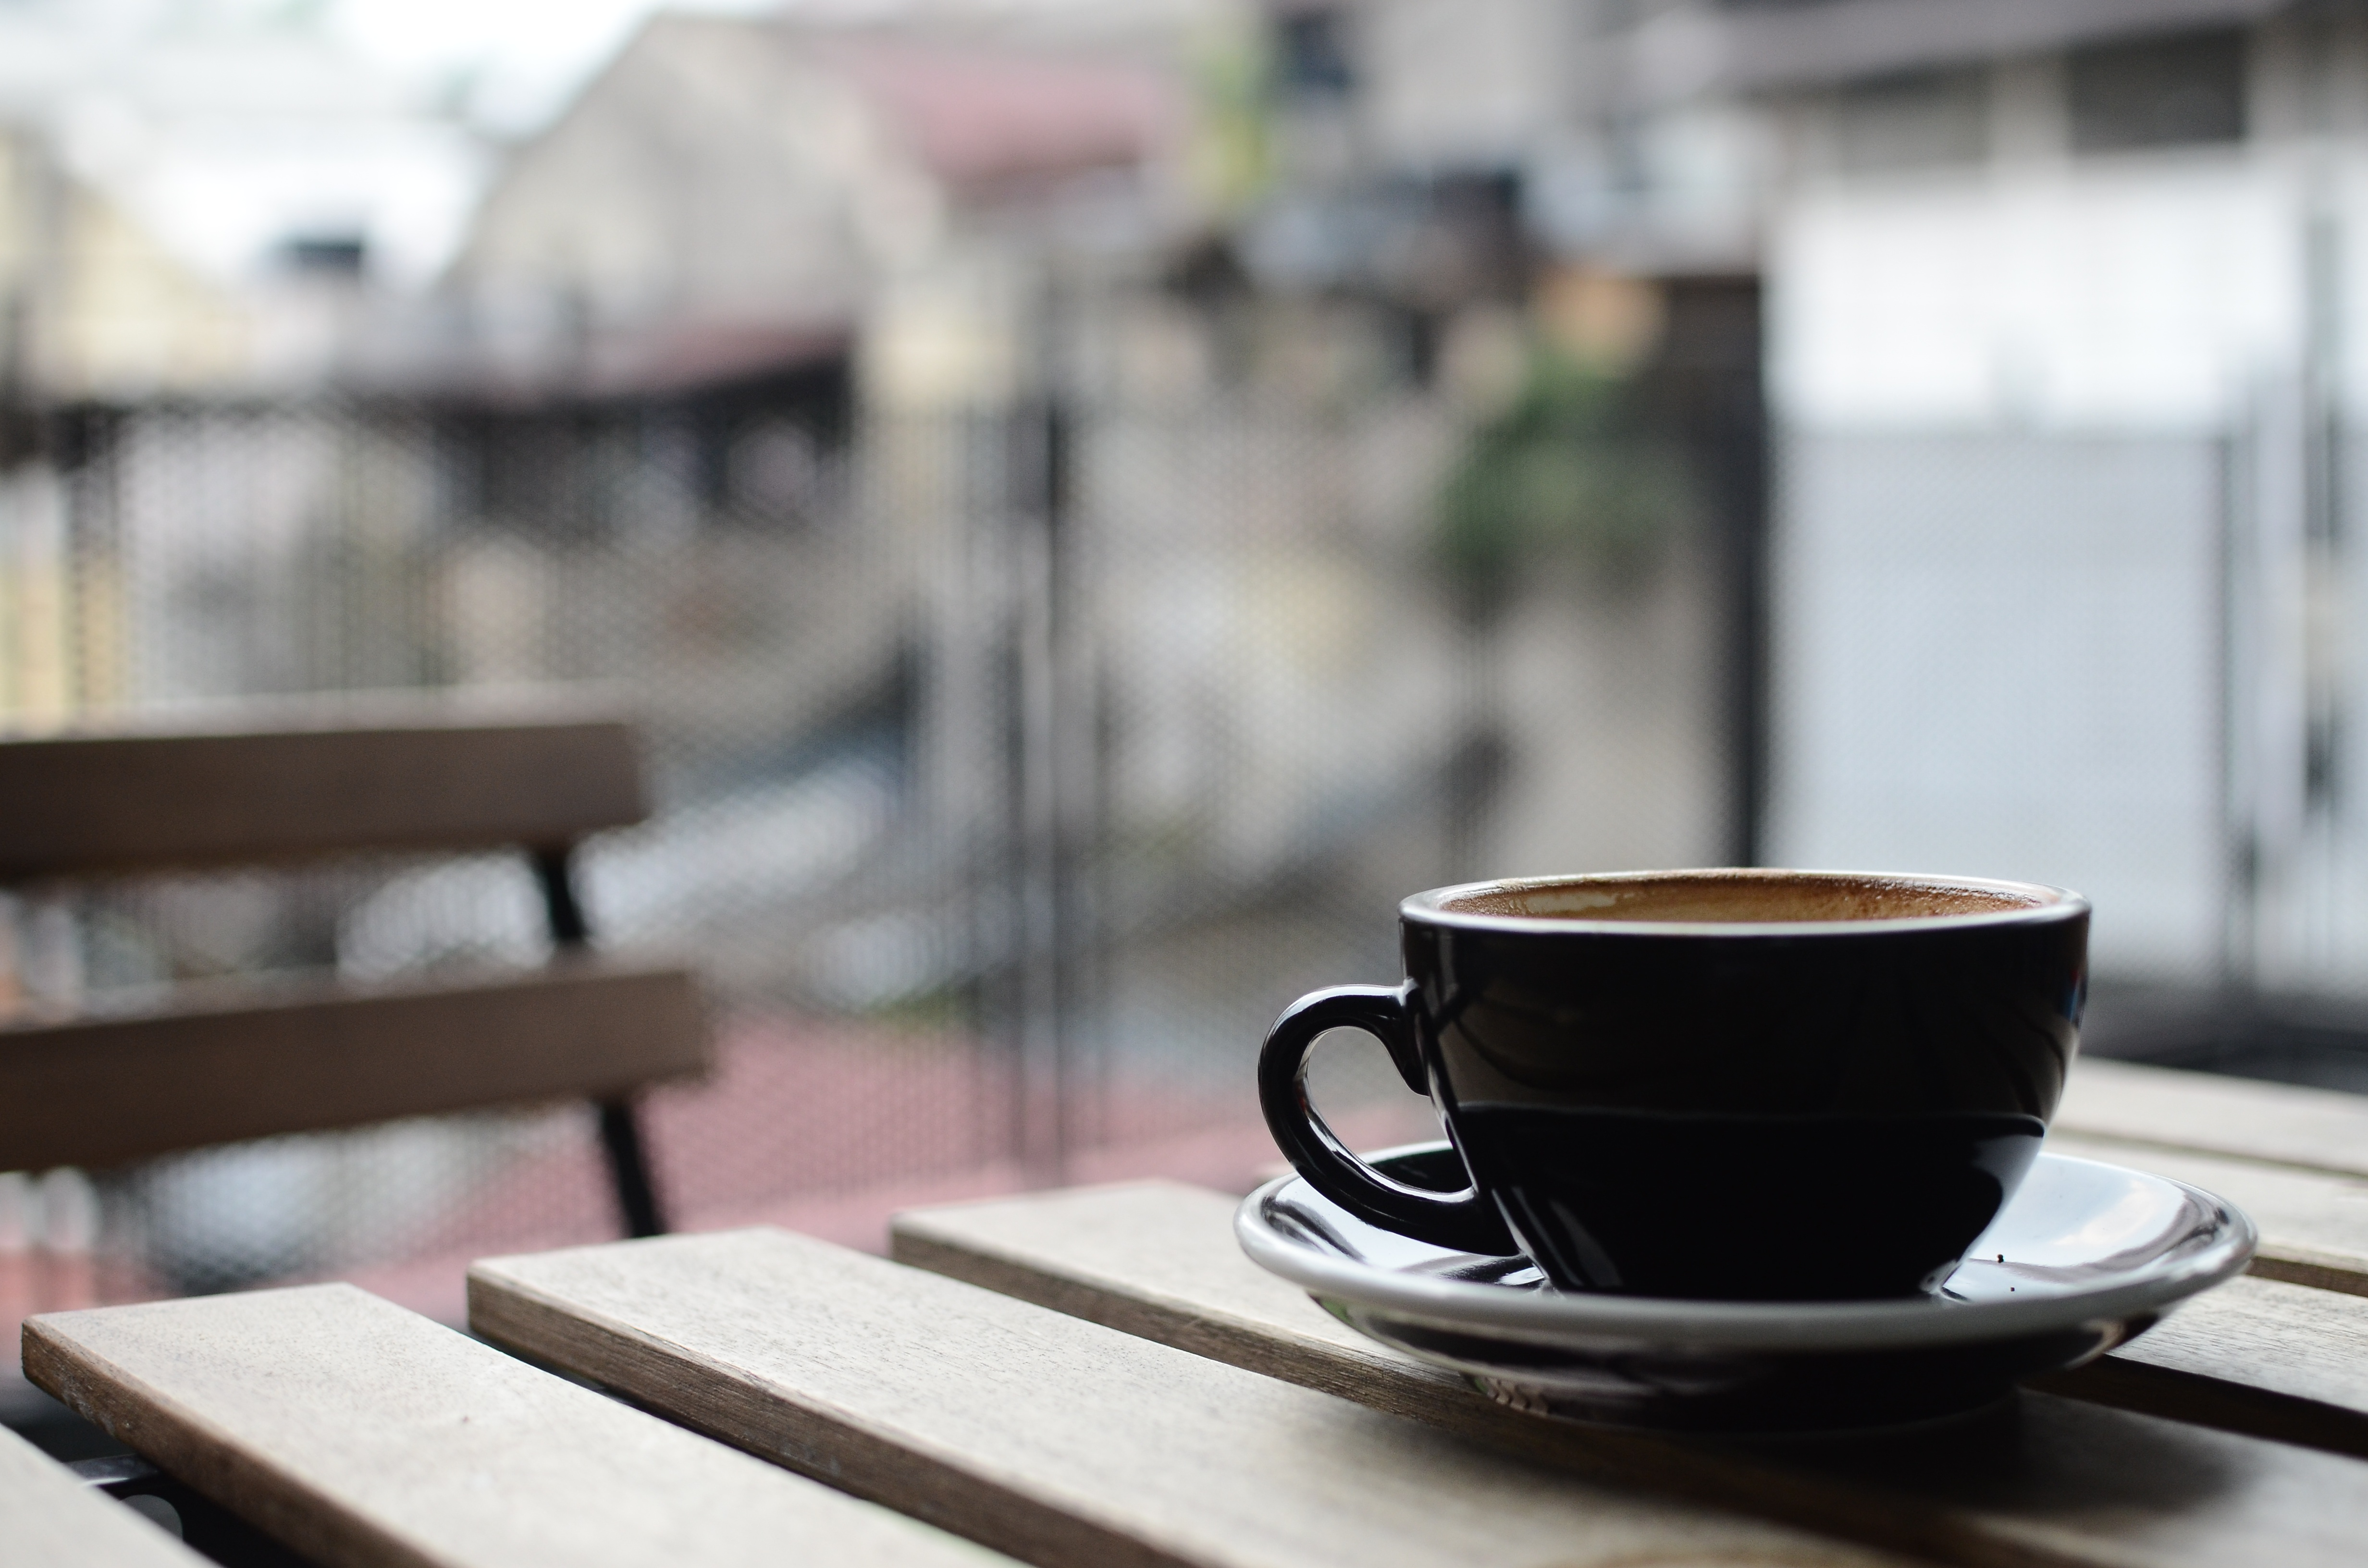 Cup of Coffee, Cafe, Coffee, Coffee photos, Cup, HQ Photo